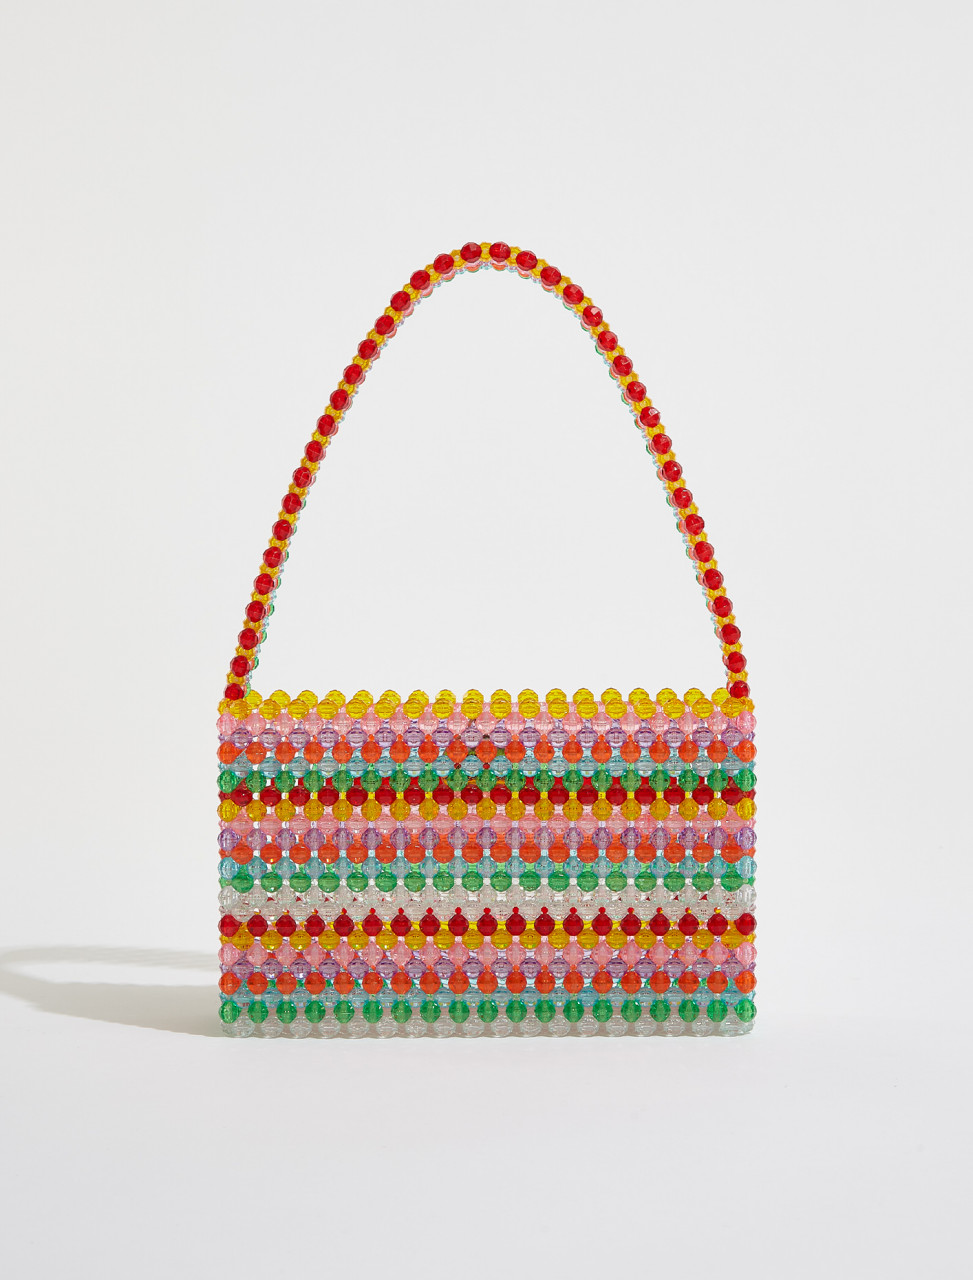 310-BAG-0078 SUSAN ALEXANDRA SOUR STRAW HANDBAG MULTI